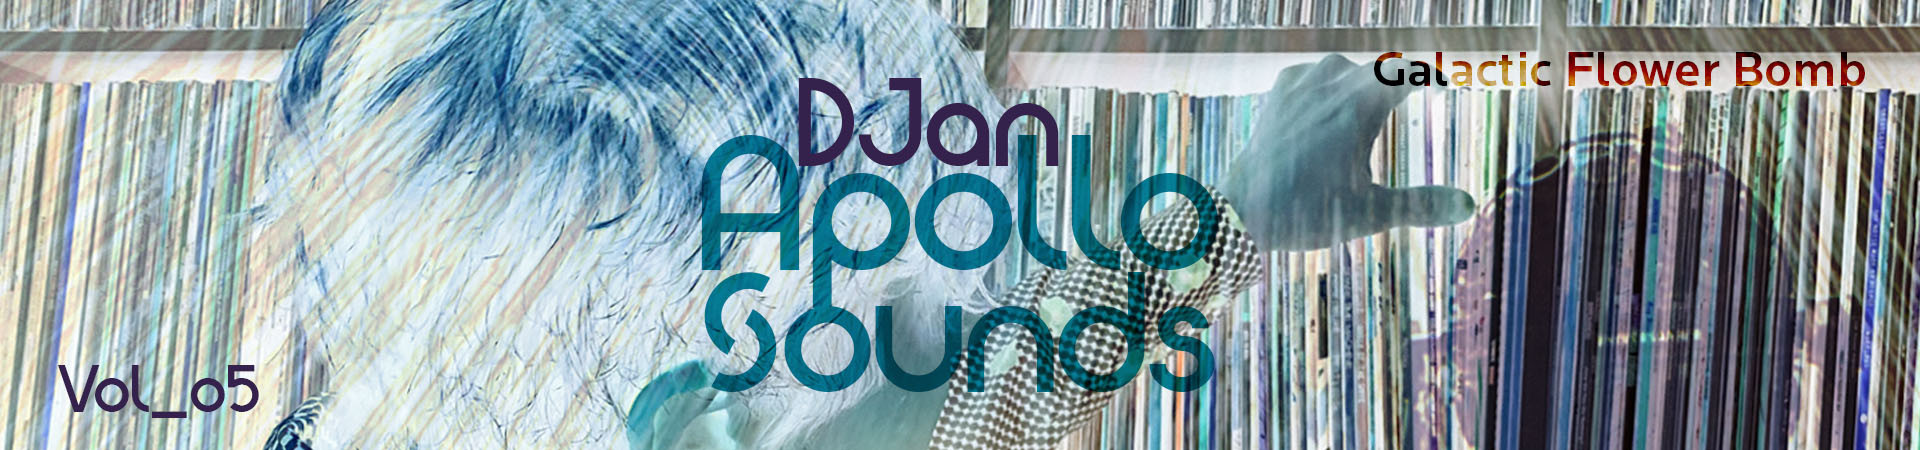 ApolloSounds Header 05